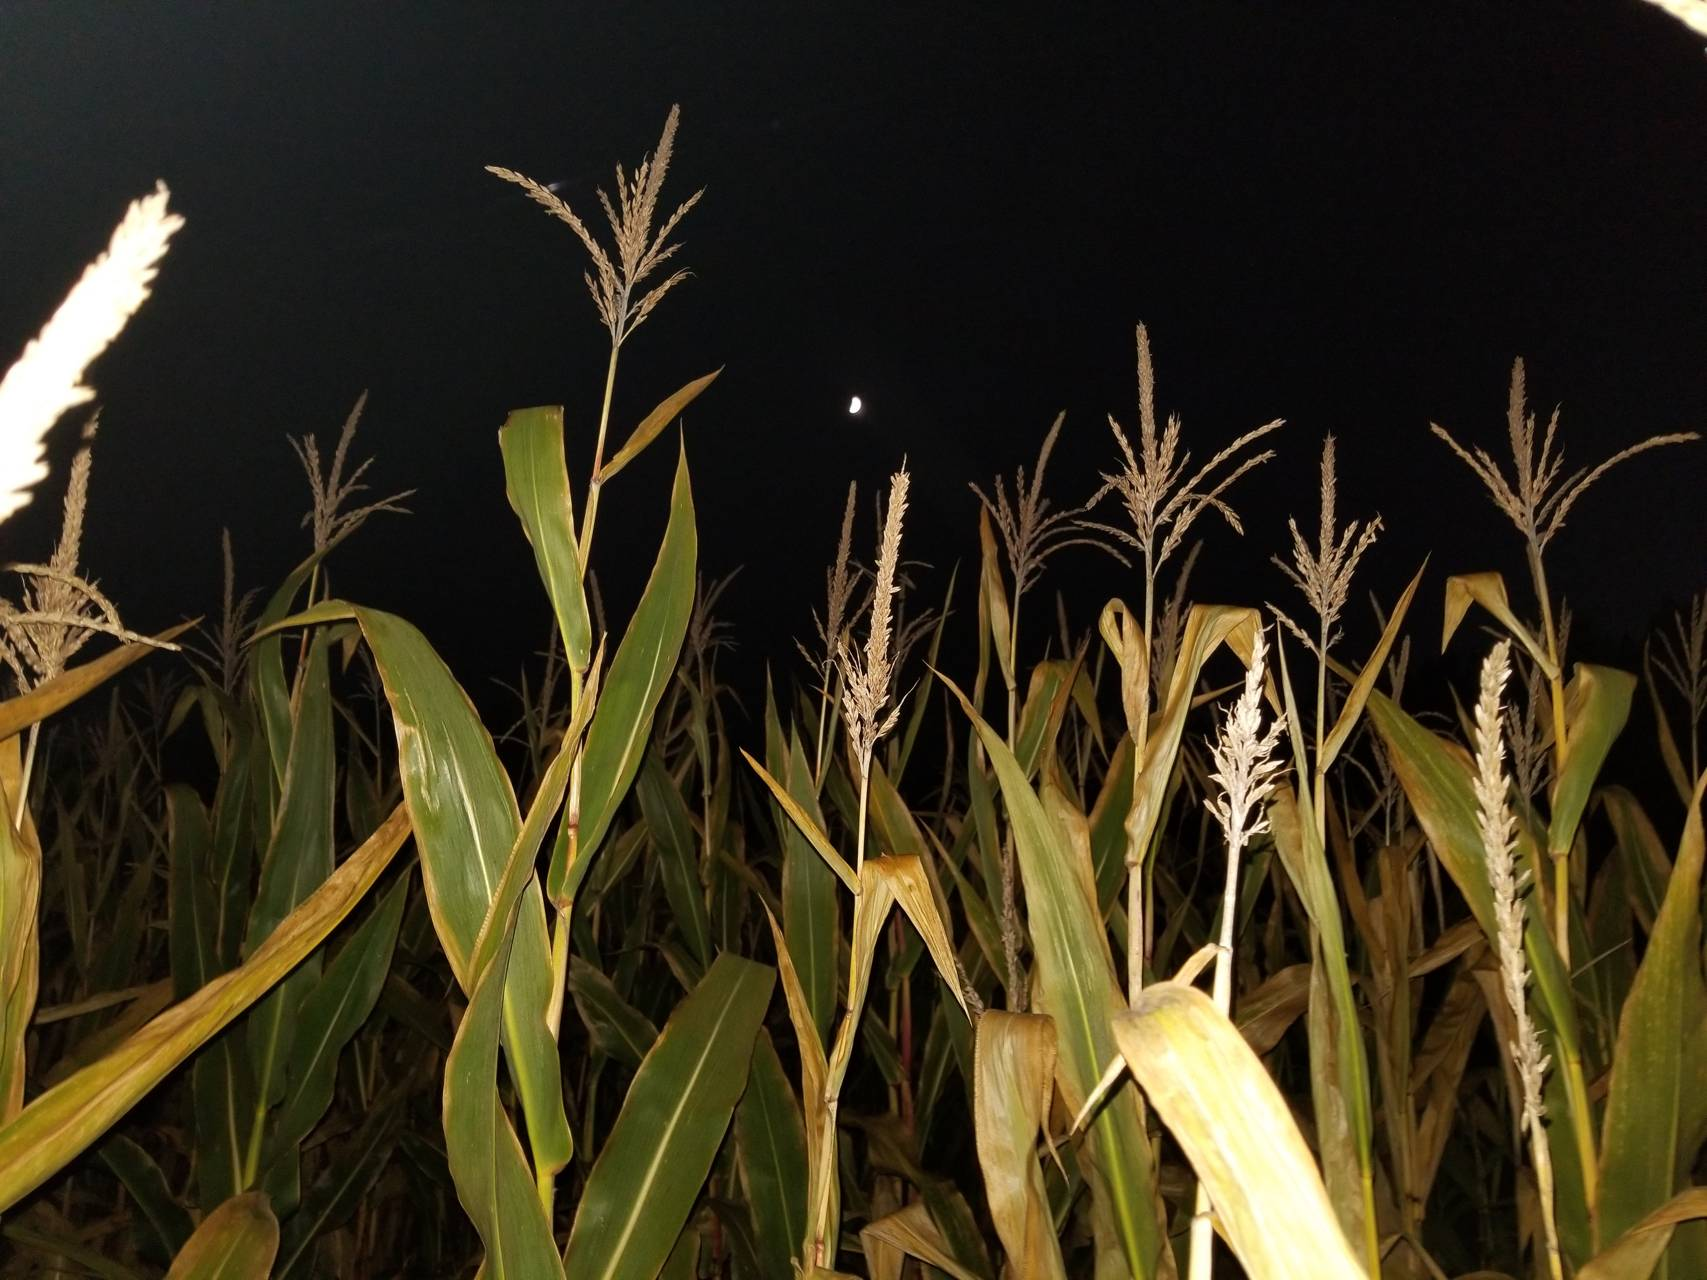 Night corn